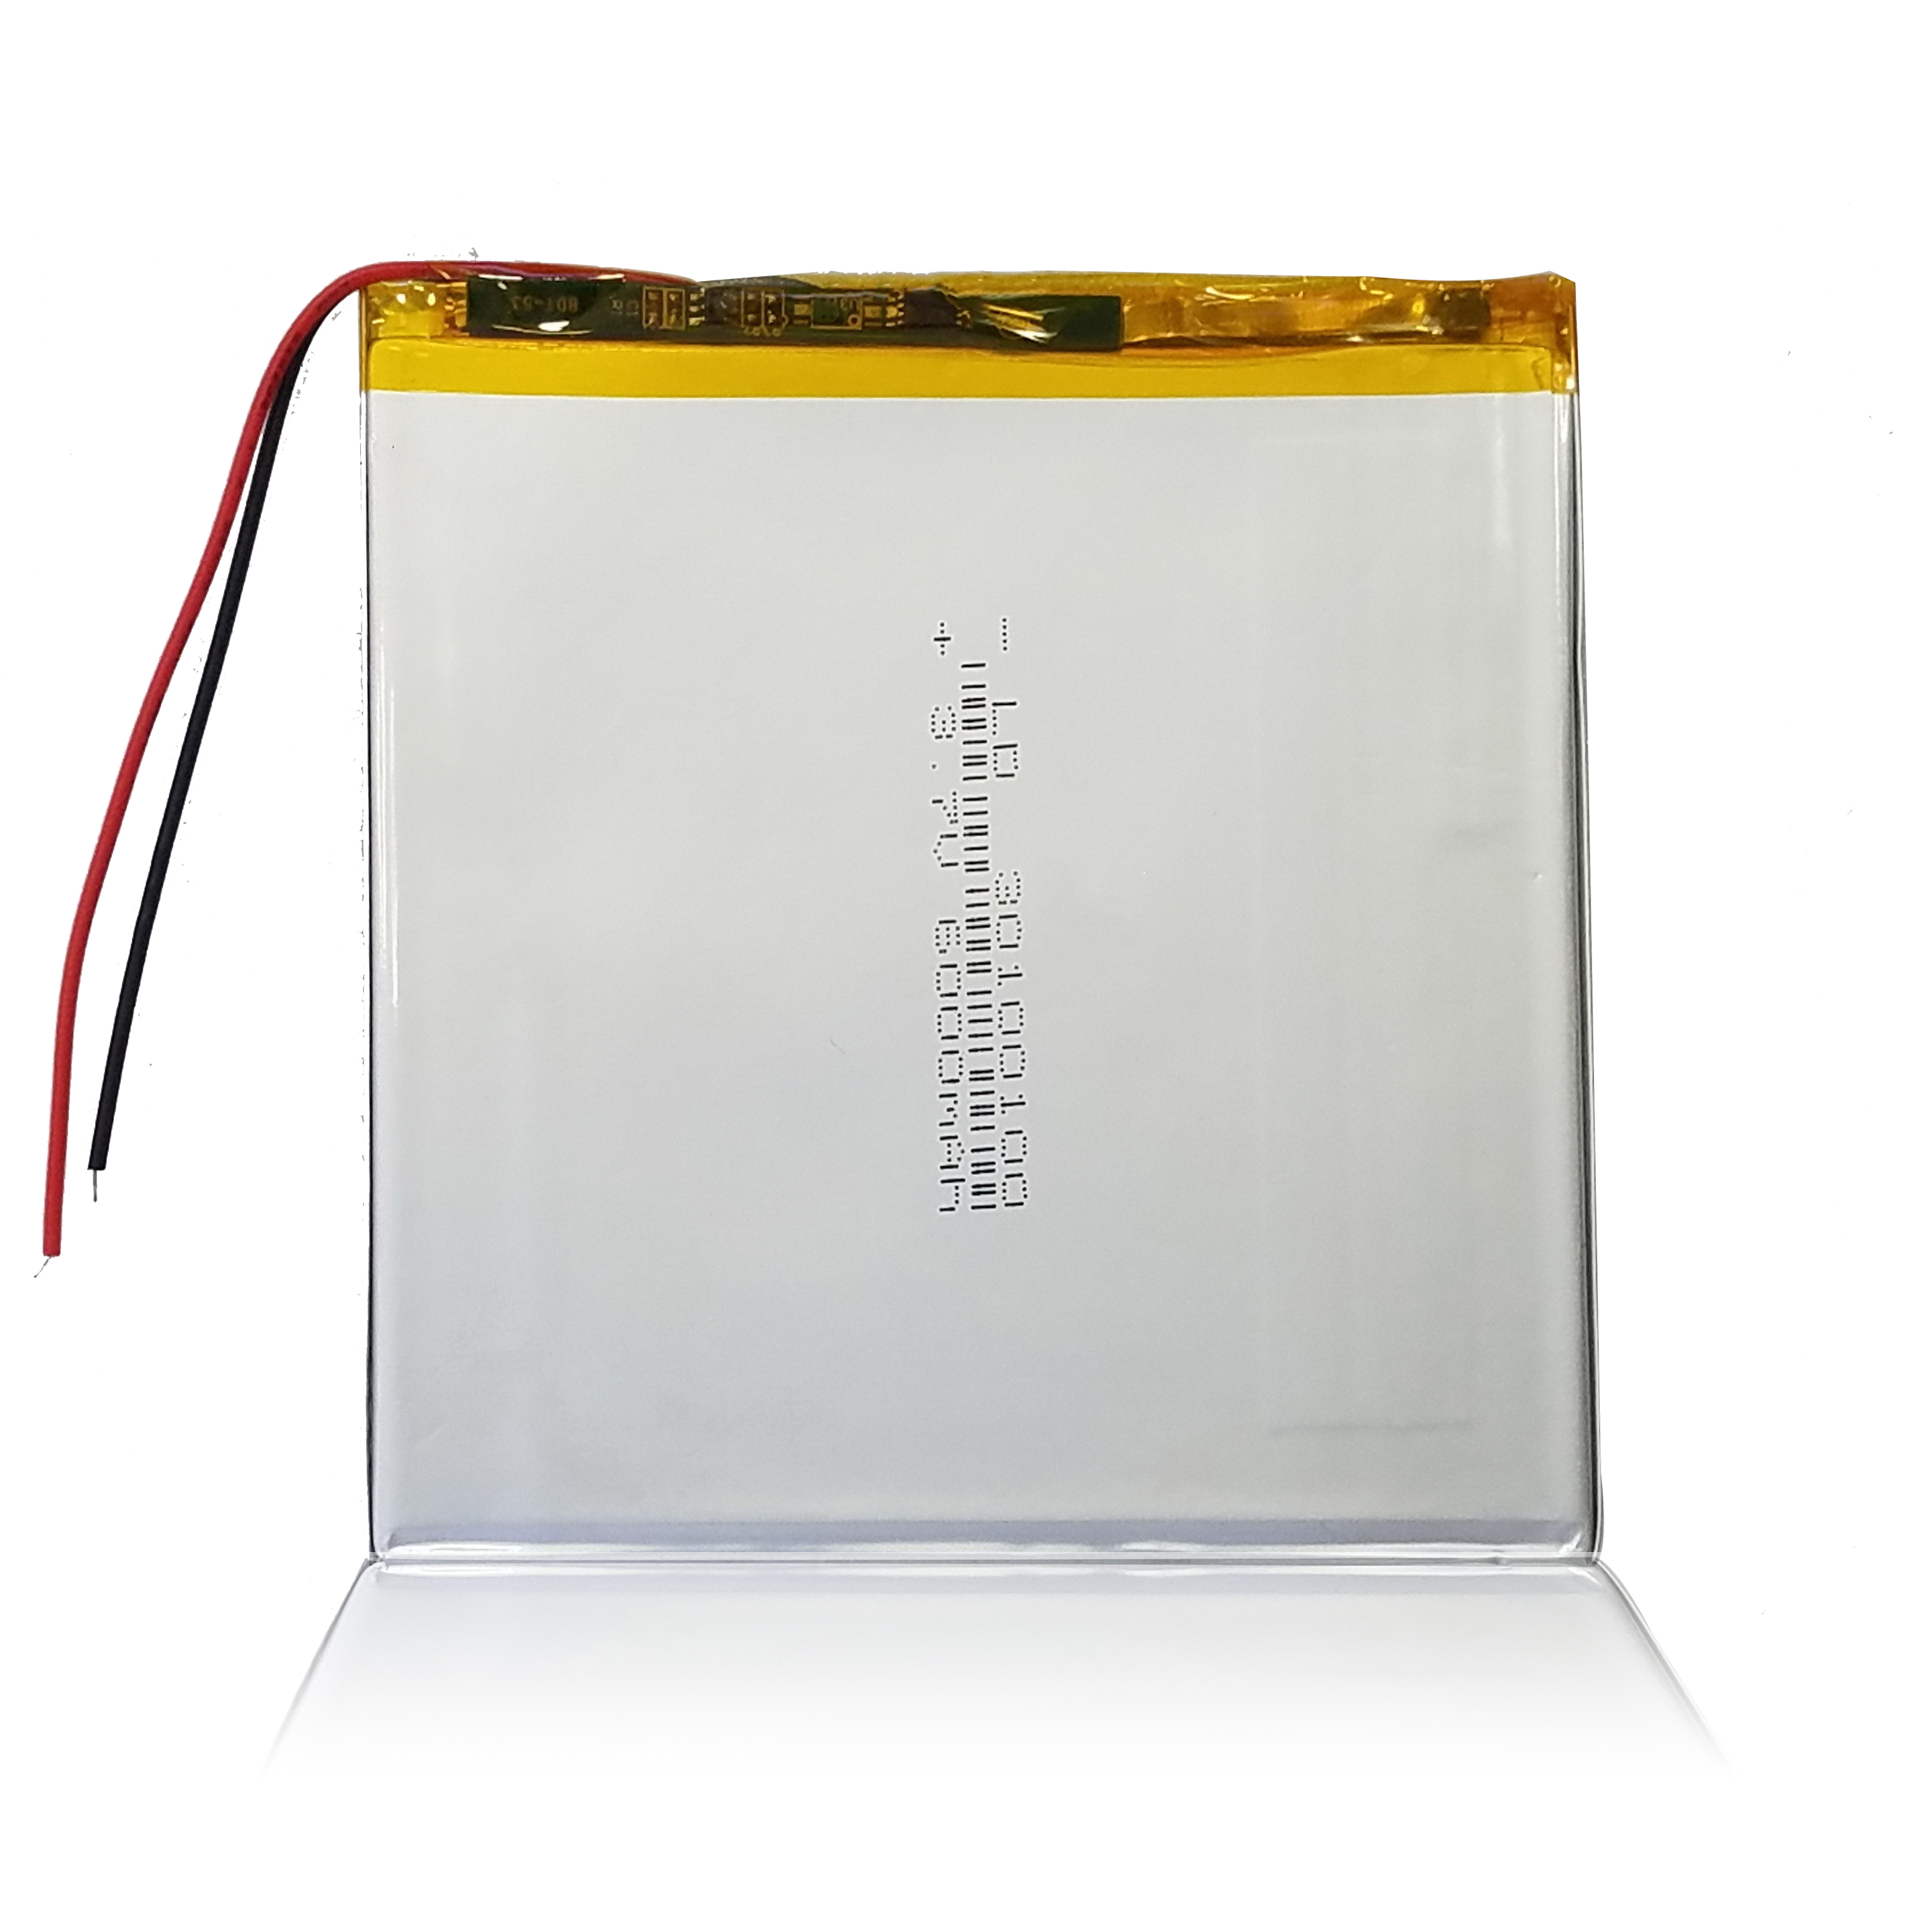 30100100 <font><b>3.7V</b></font> <font><b>6000mAh</b></font> Rechargeable Li-Polymer Li-ion <font><b>Battery</b></font> <font><b>For</b></font> Irbis TZ80 TZ81L TZ82 MAJESTIC <font><b>TABLET</b></font> TAB-494 3G image